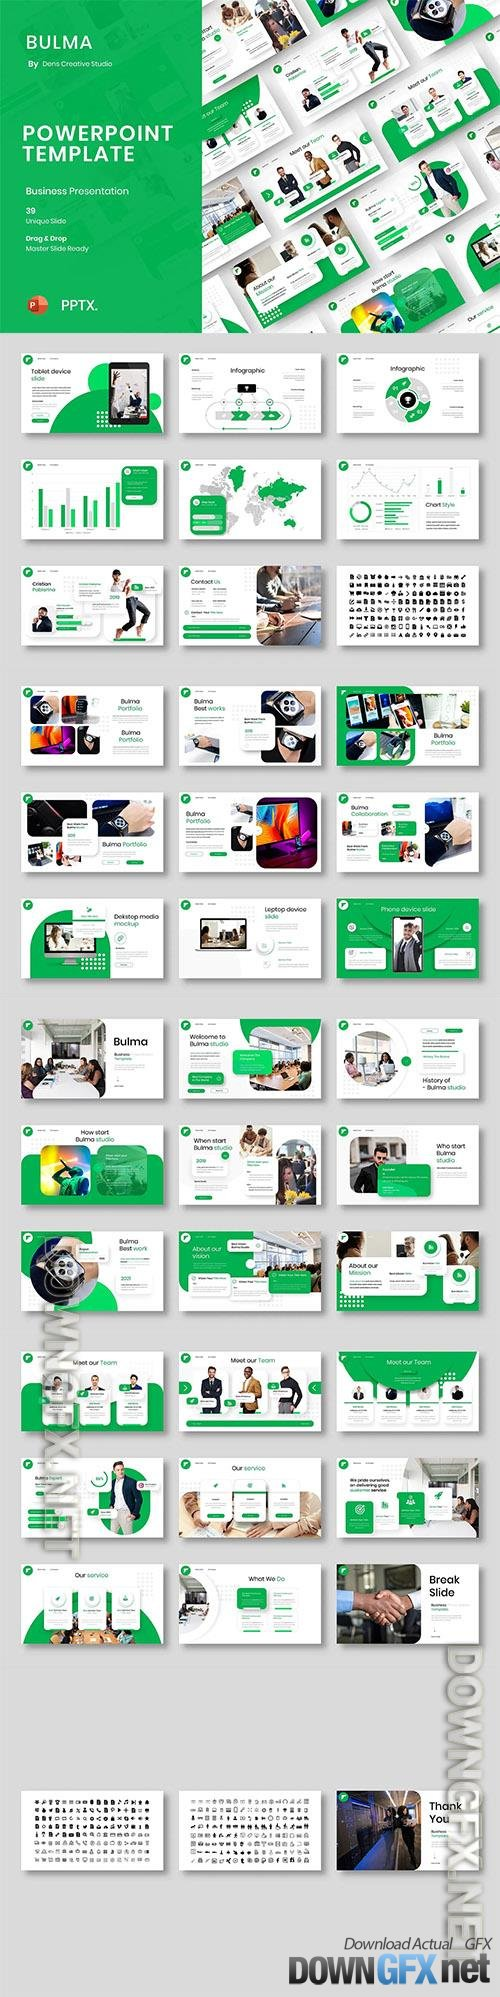 Bulma - Business Powerpoint, Keynote and Google Slides Template